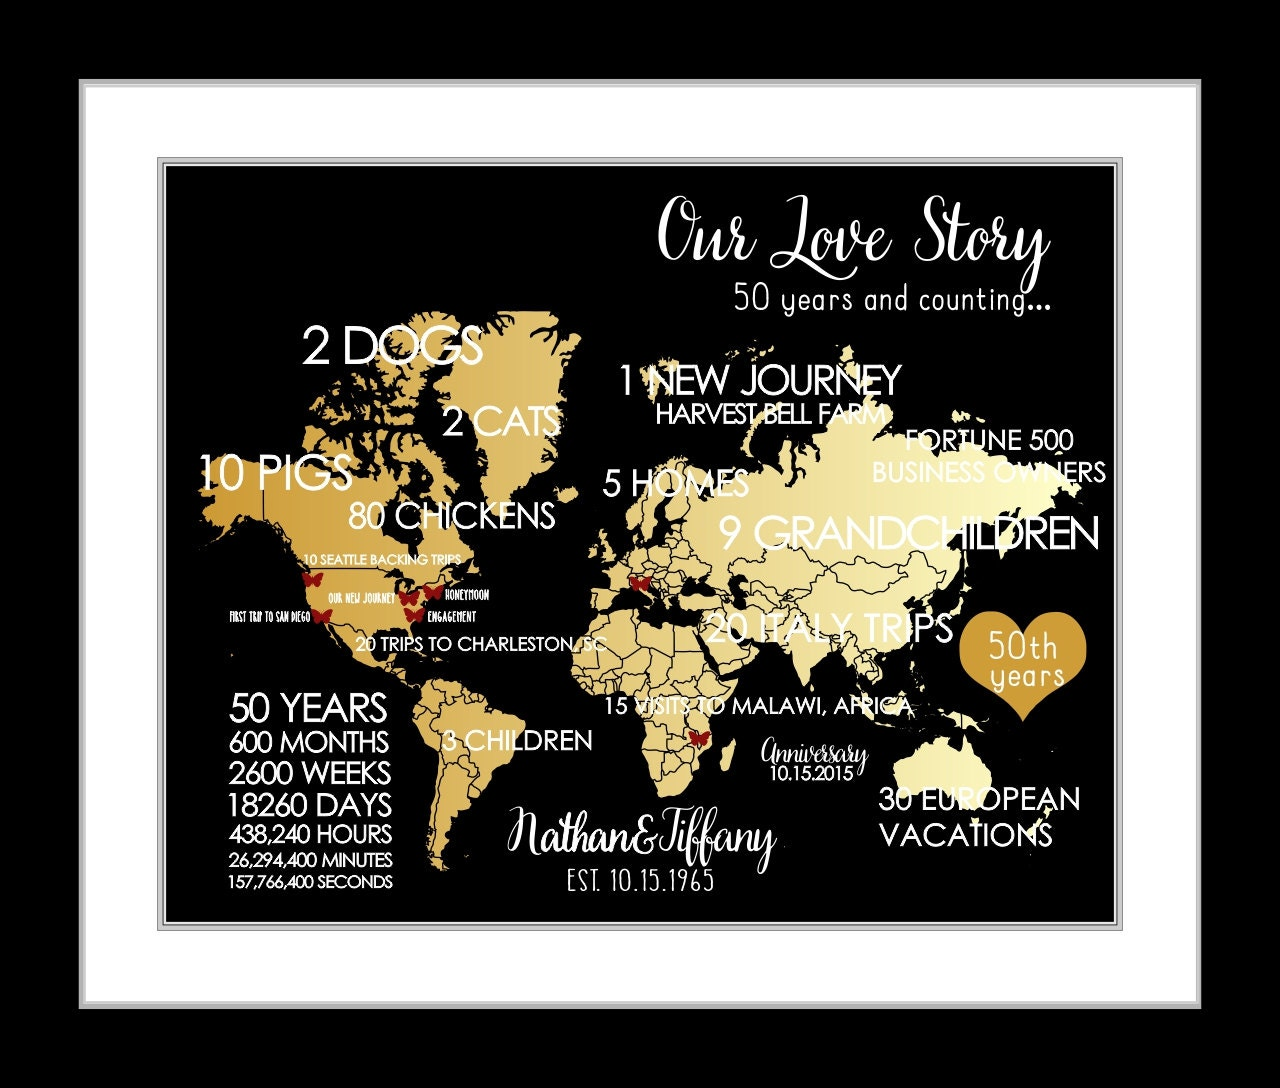 Ideas For A 50th Wedding Anniversary Gift: 50th Anniversary Gifts 50th Anniversary Gift Ideas 50th